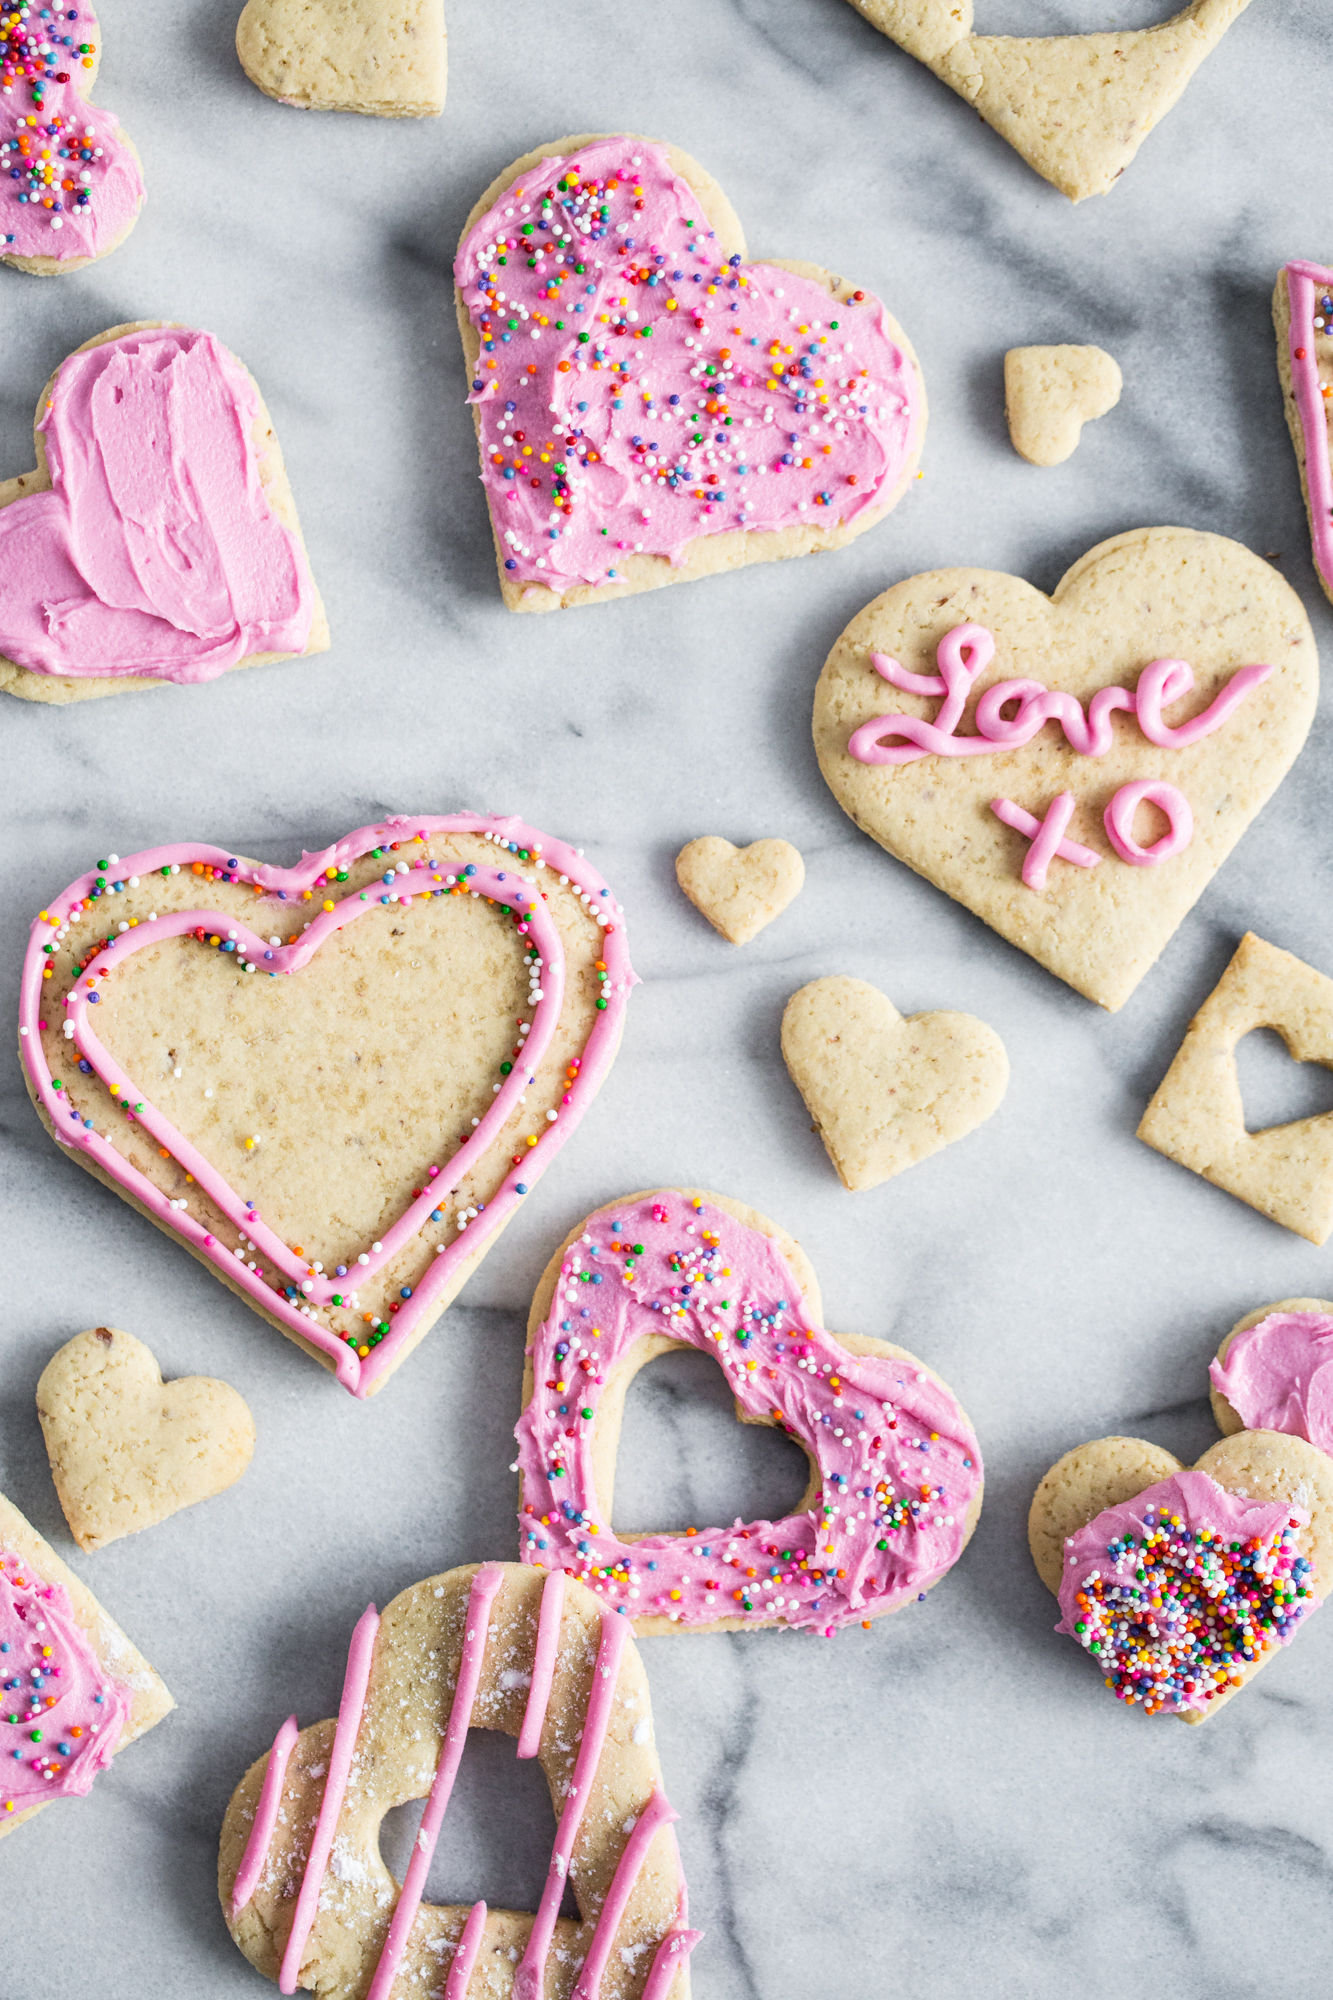 Easy Vegan Sugar Cookies With Pink Frosting Oh She Glows Thedirtygyro